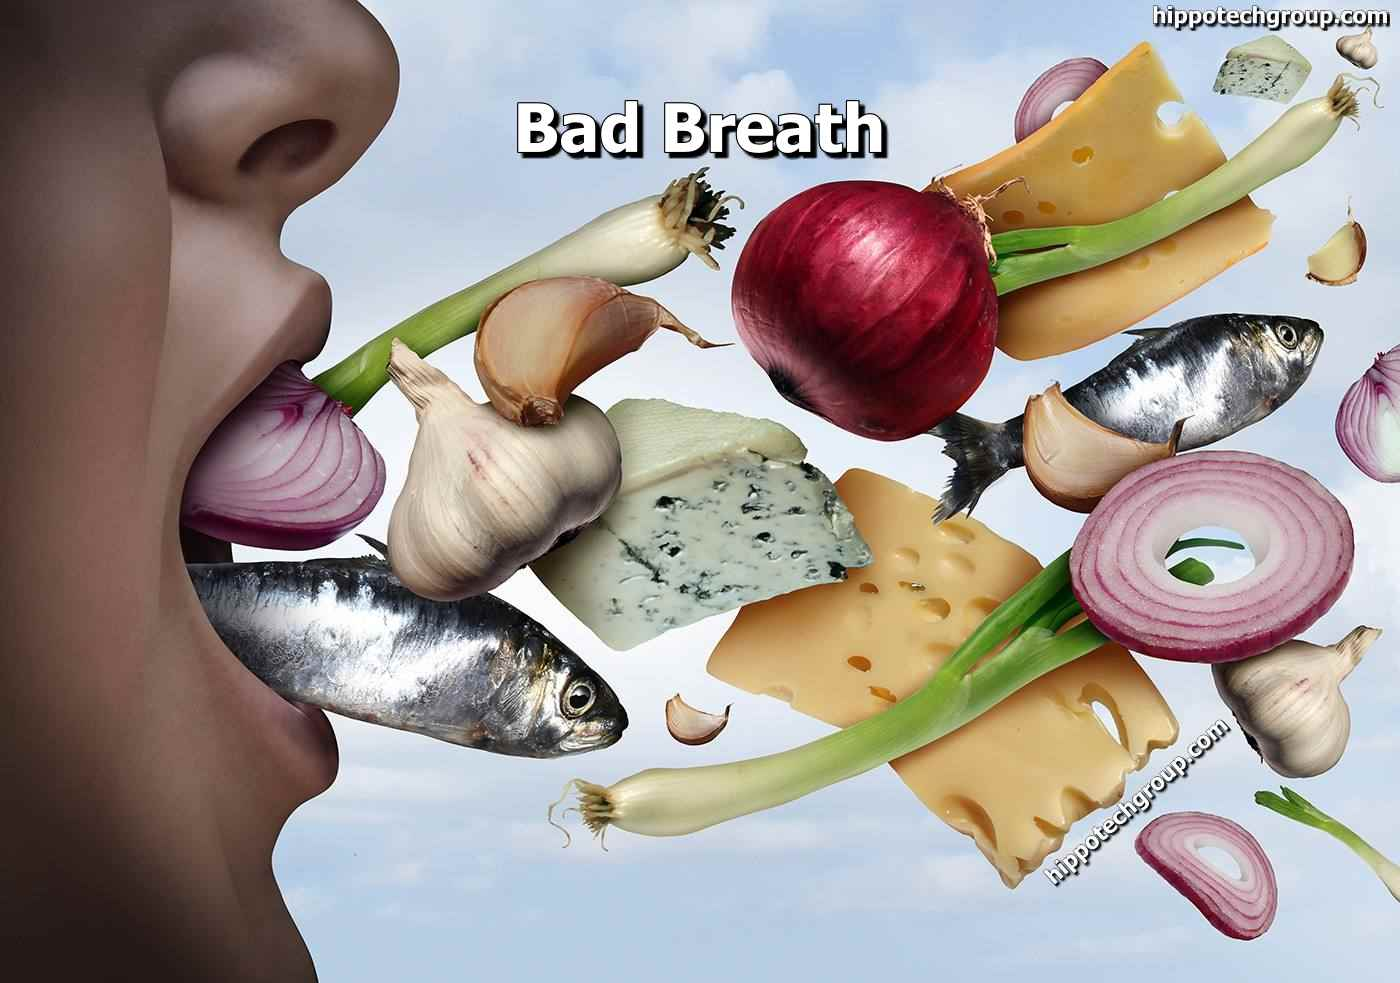 How to get rid of Bad Breath Naturally (Cameroon's Home Made-Remedy)